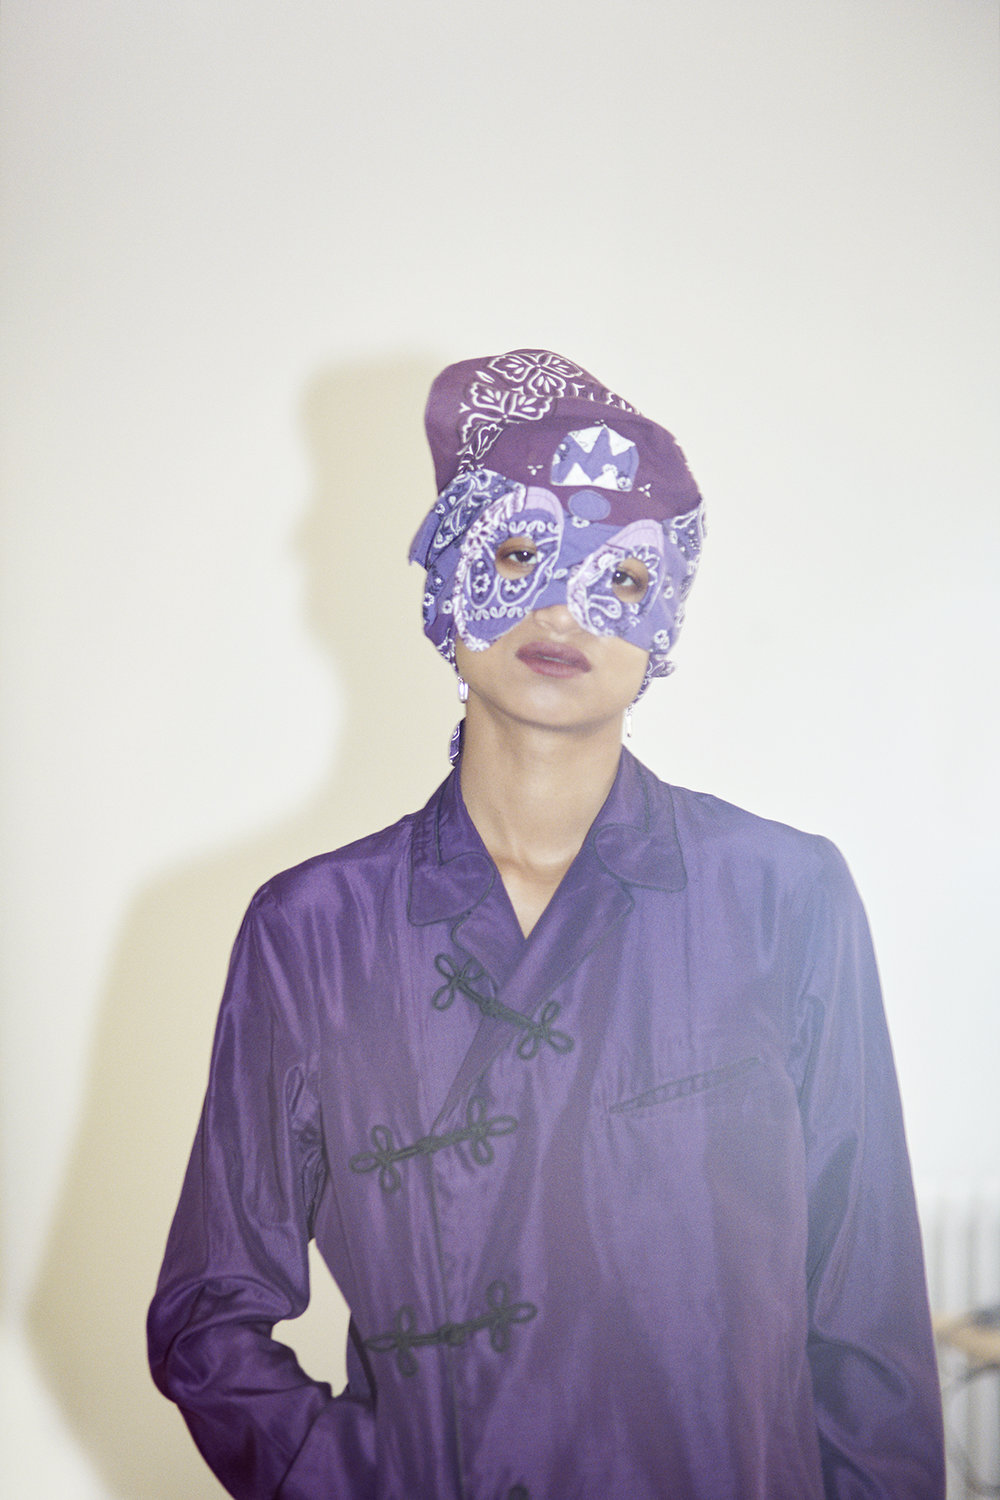 Pajama croise shirt, purple mask bandana. Hand-cut crystals silver earrings EDDIE BORGO